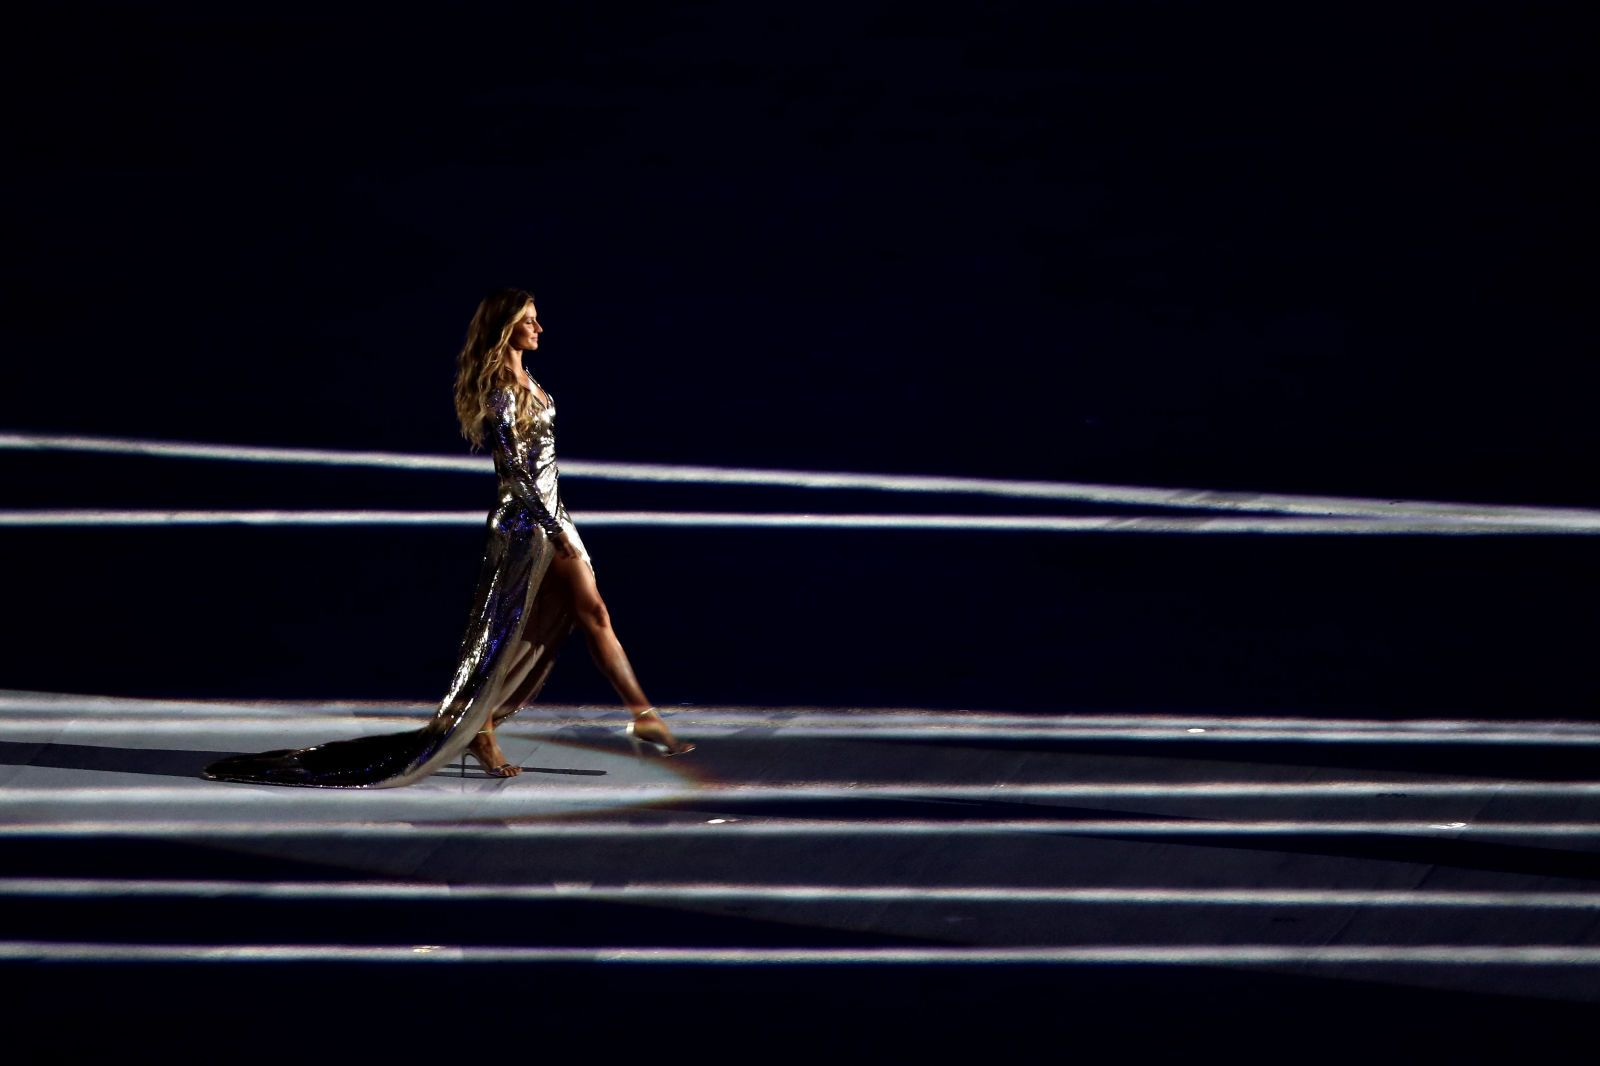 See Gisele Bündchen Walk the World's Longest Runway at the Olympics Opening Ceremony in Rio